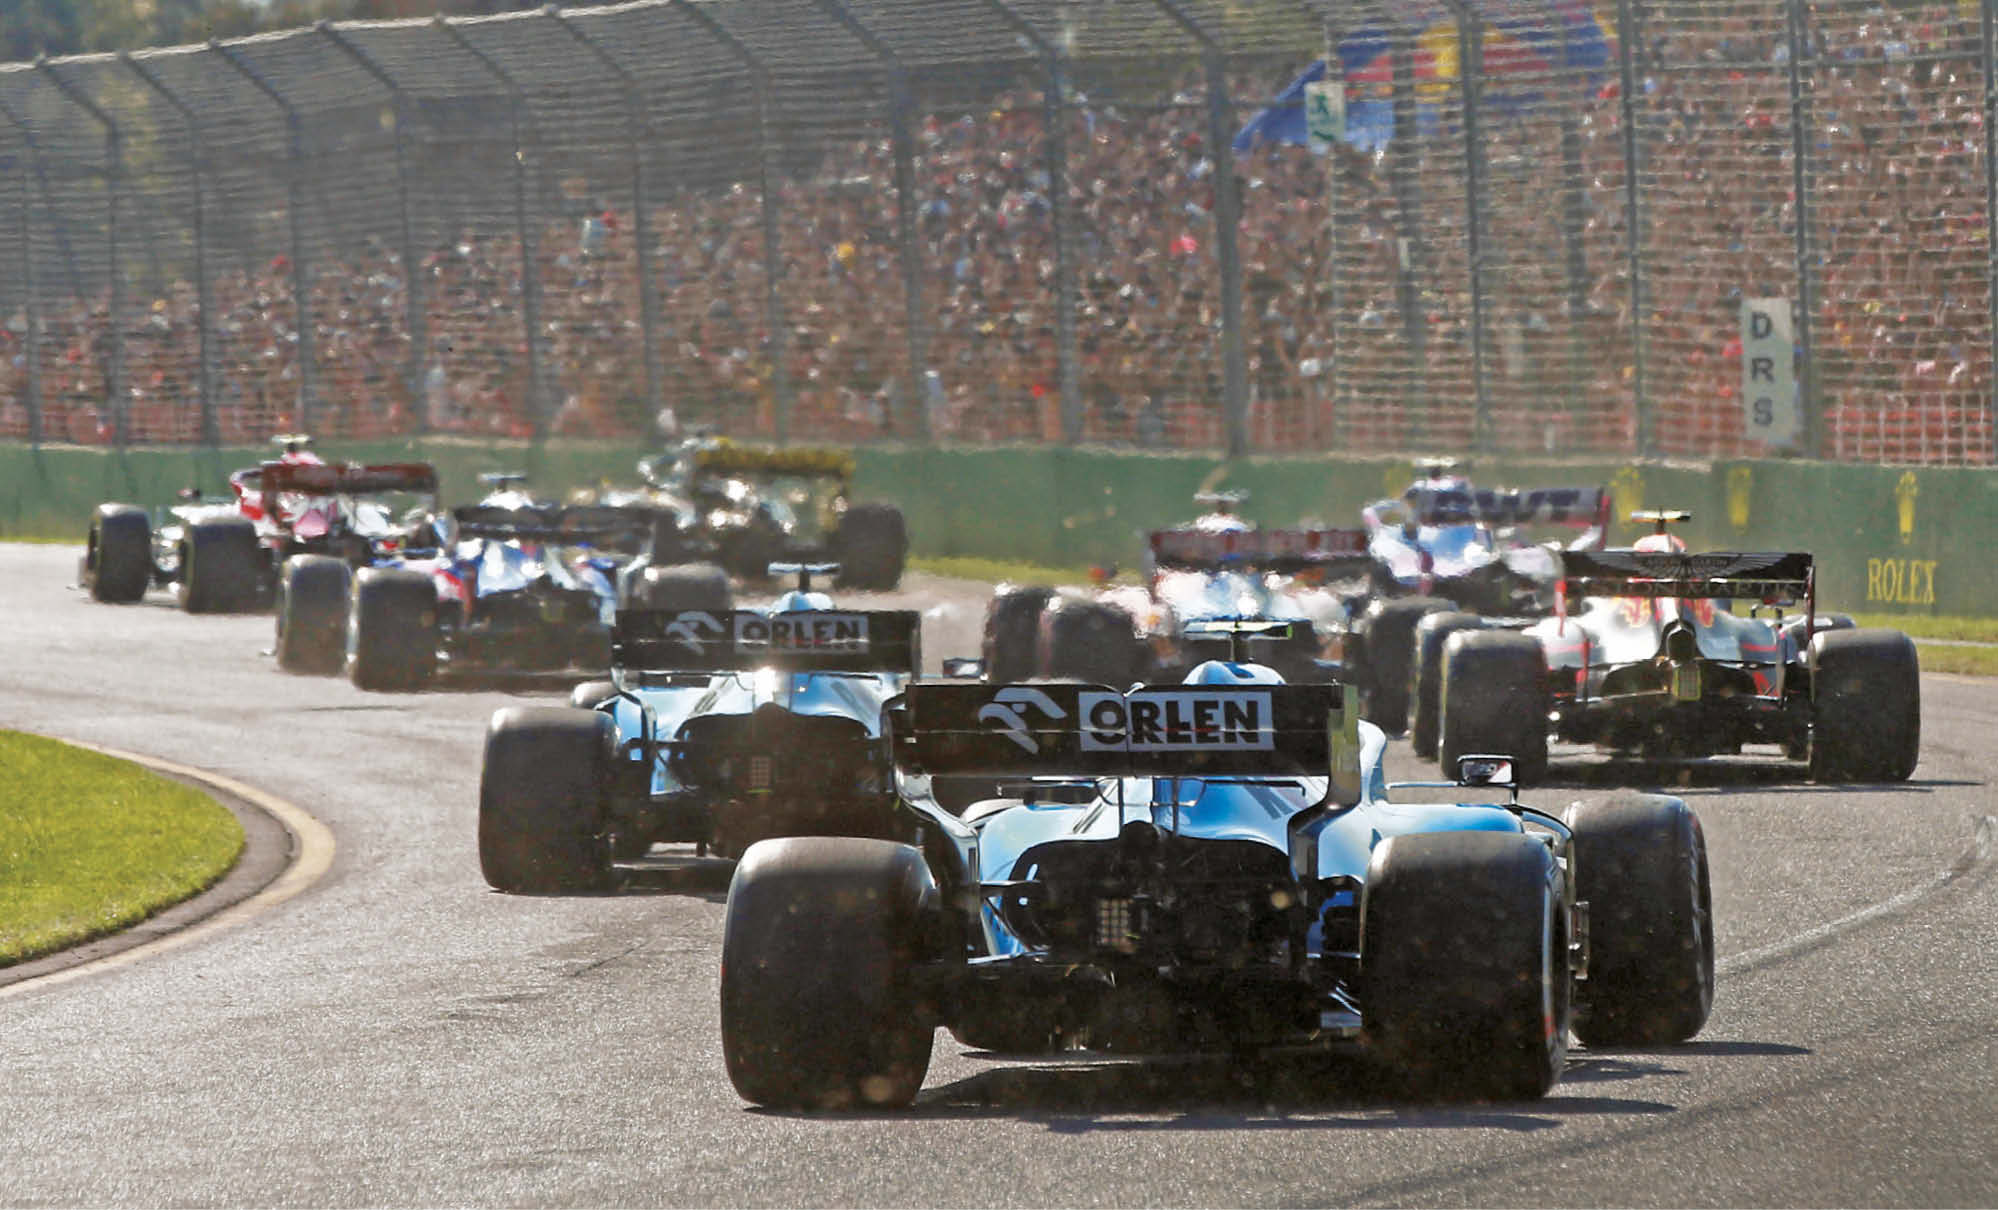 The new Williams FW42 has so far been anchored to the back of the grand prix grid